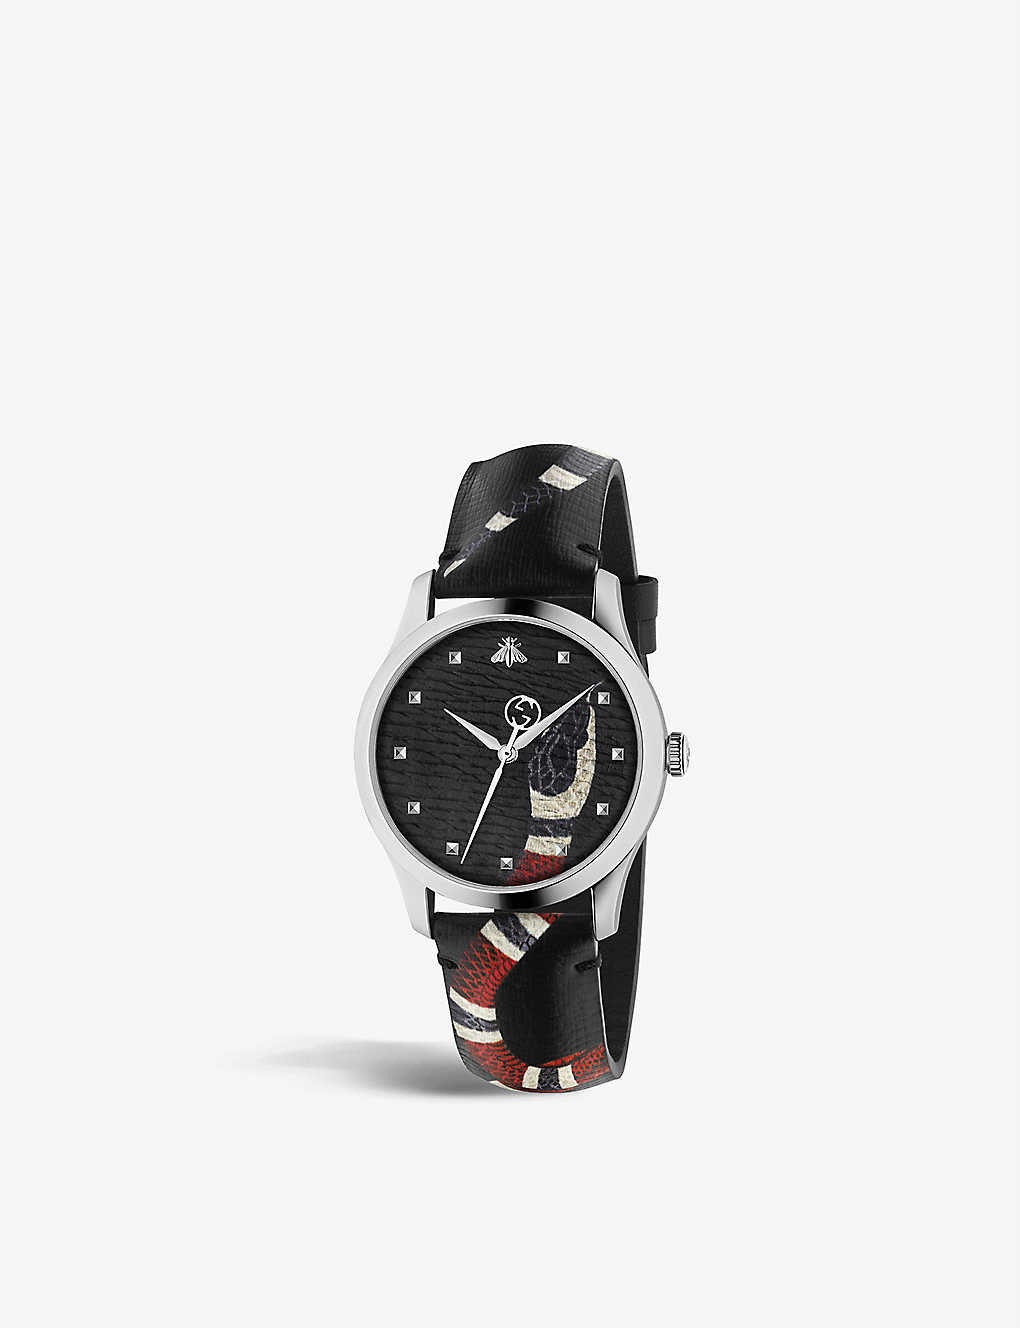 6136c2e8133 YA1264007 Le Marché Des Merveilles stainless steel and leather watch ...